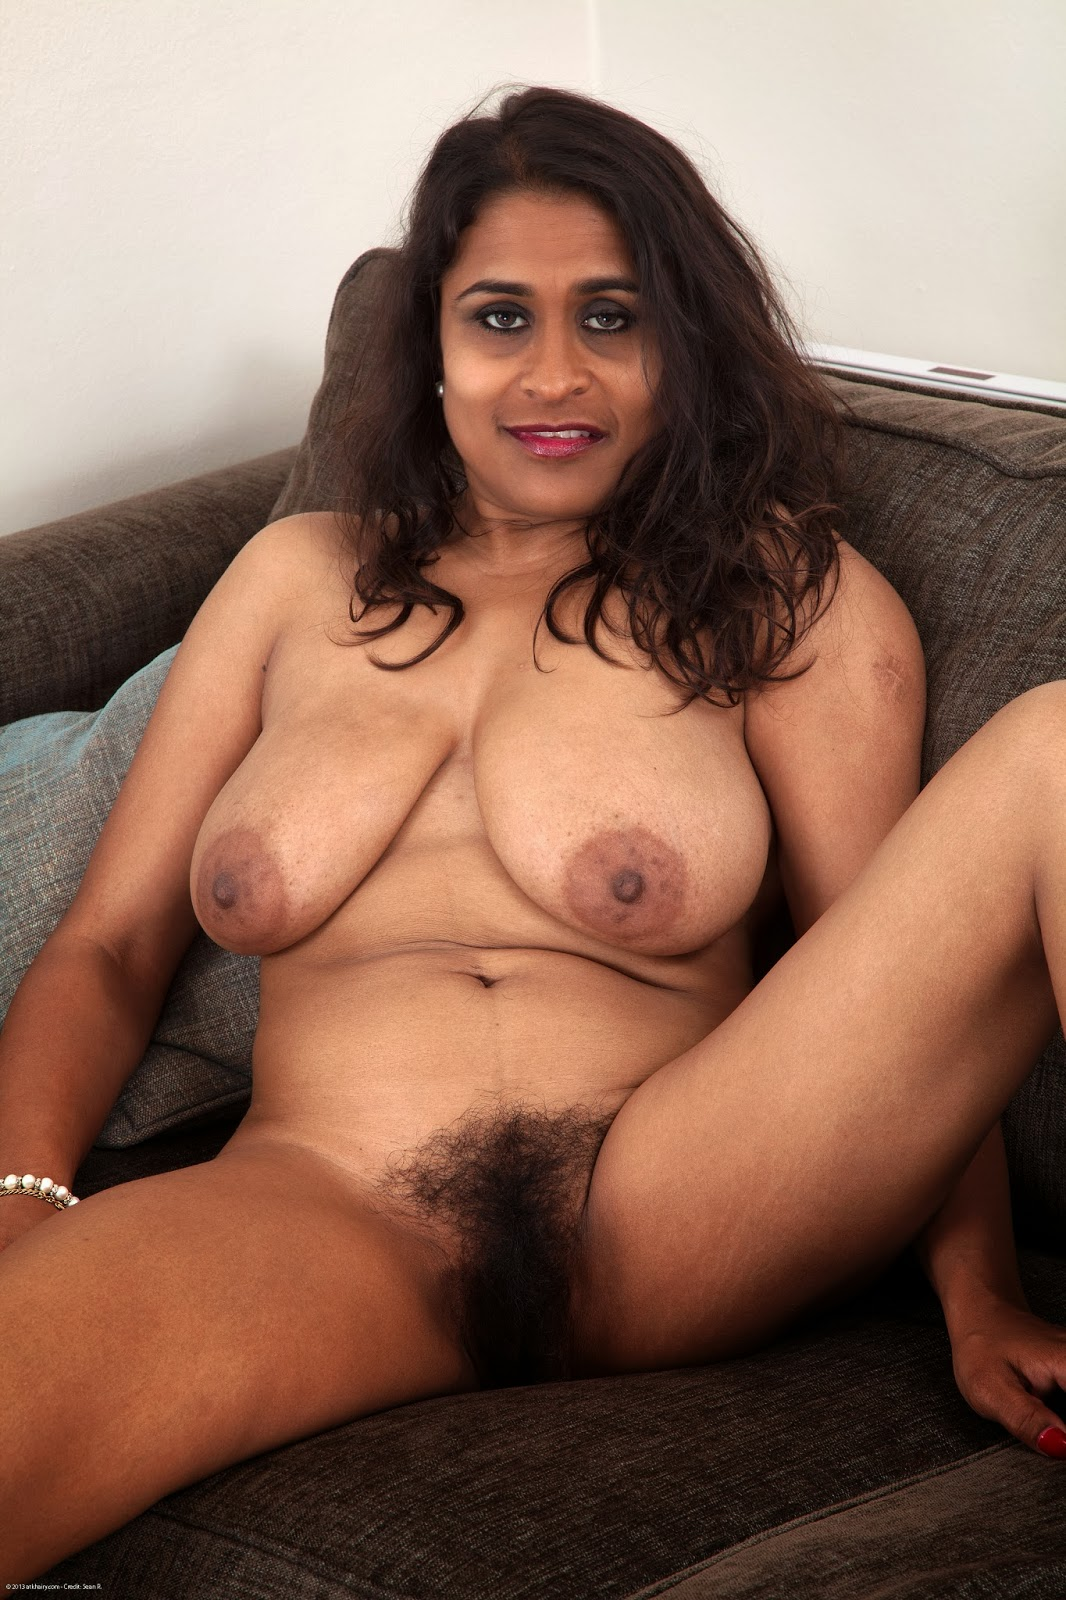 Indian nude women pic